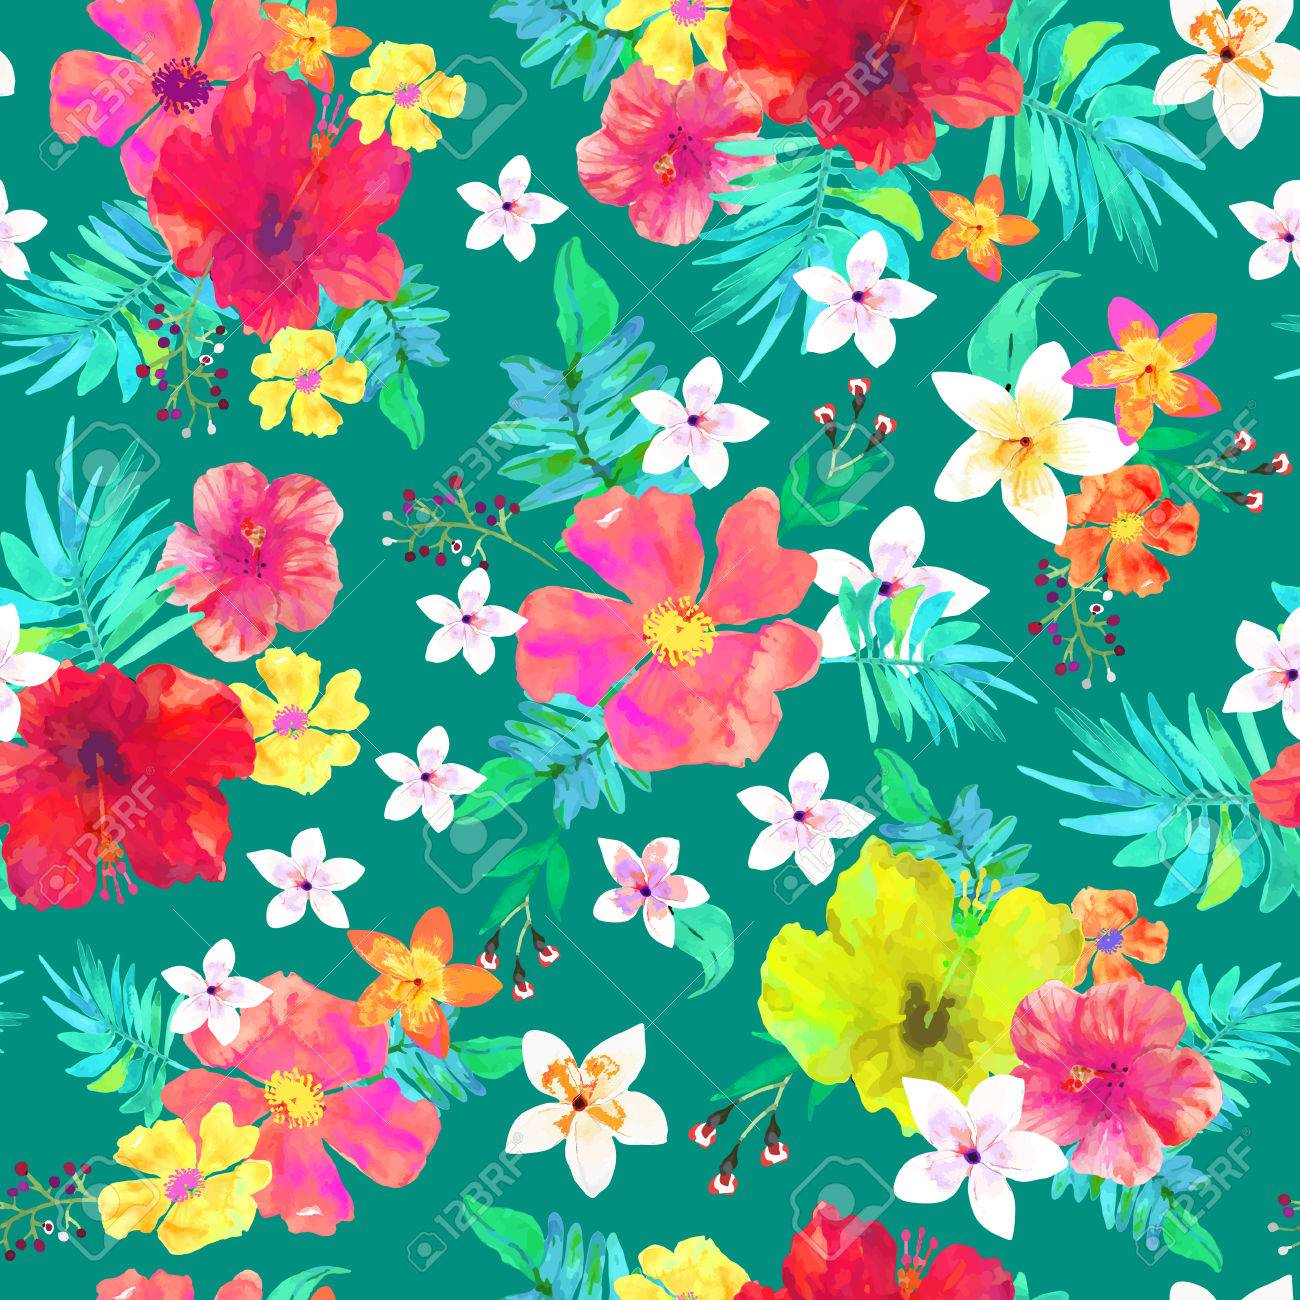 Seamless Floral Background Tropical Colorful Pattern Isolated